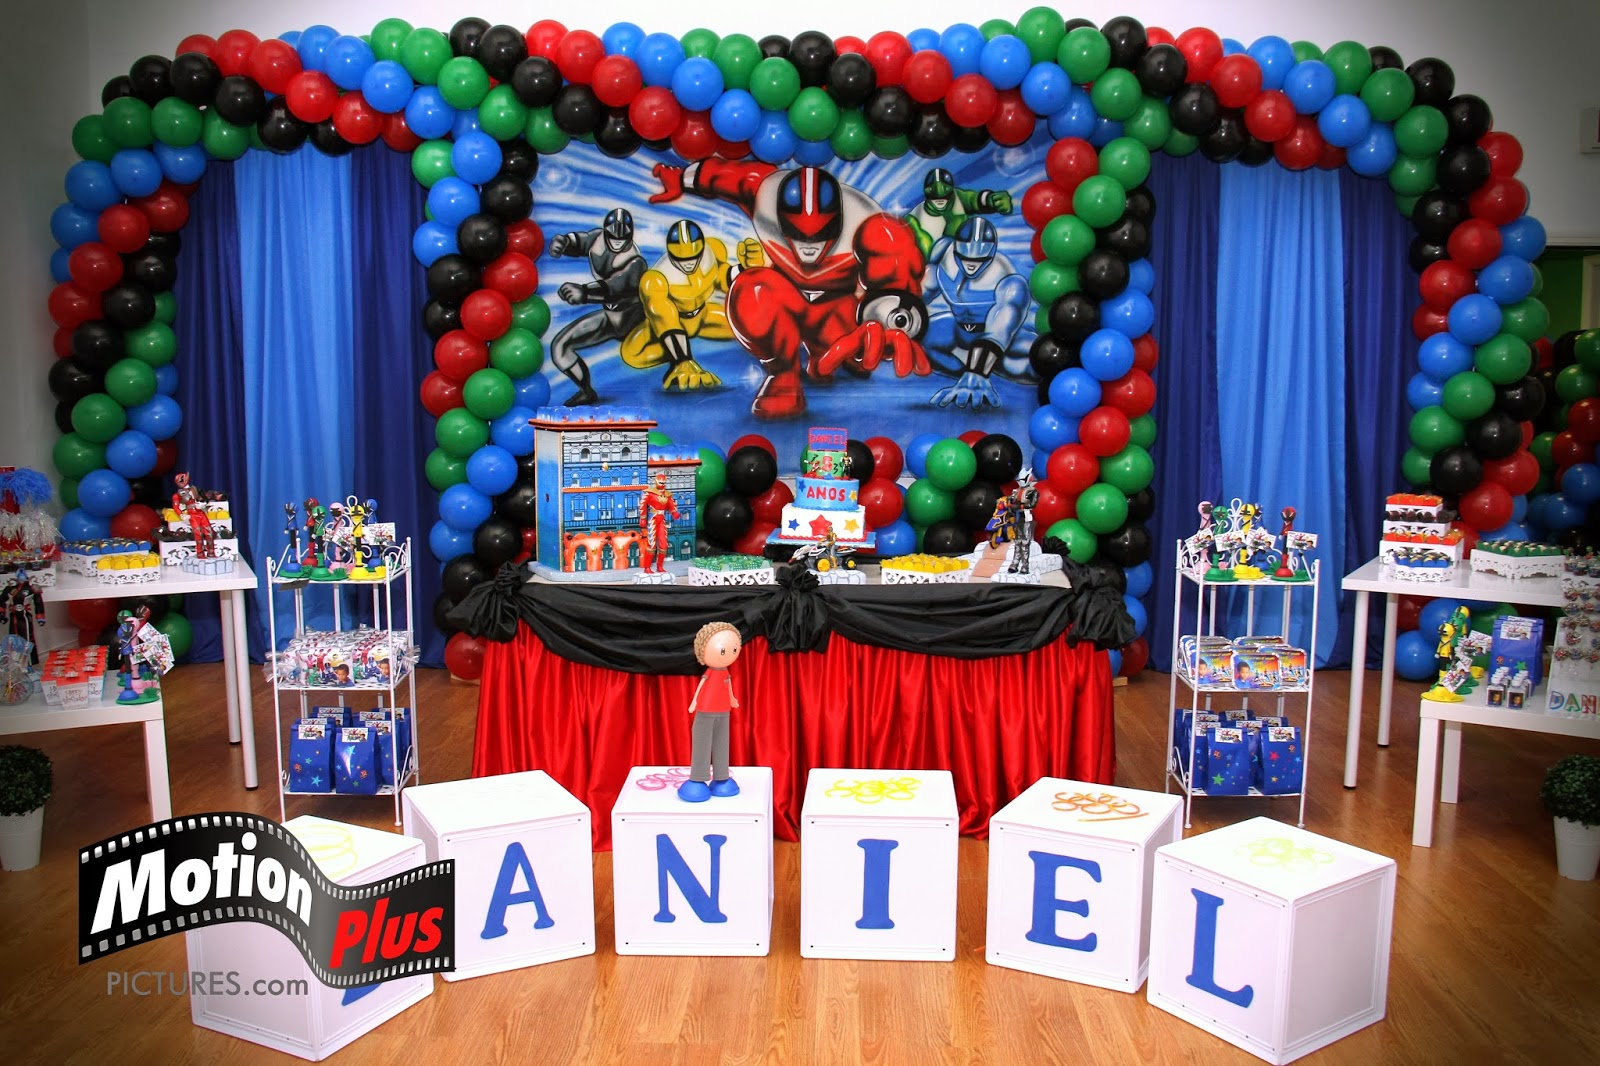 Motion Plus Pictures: Transformers Themed Birthday Party Ideas